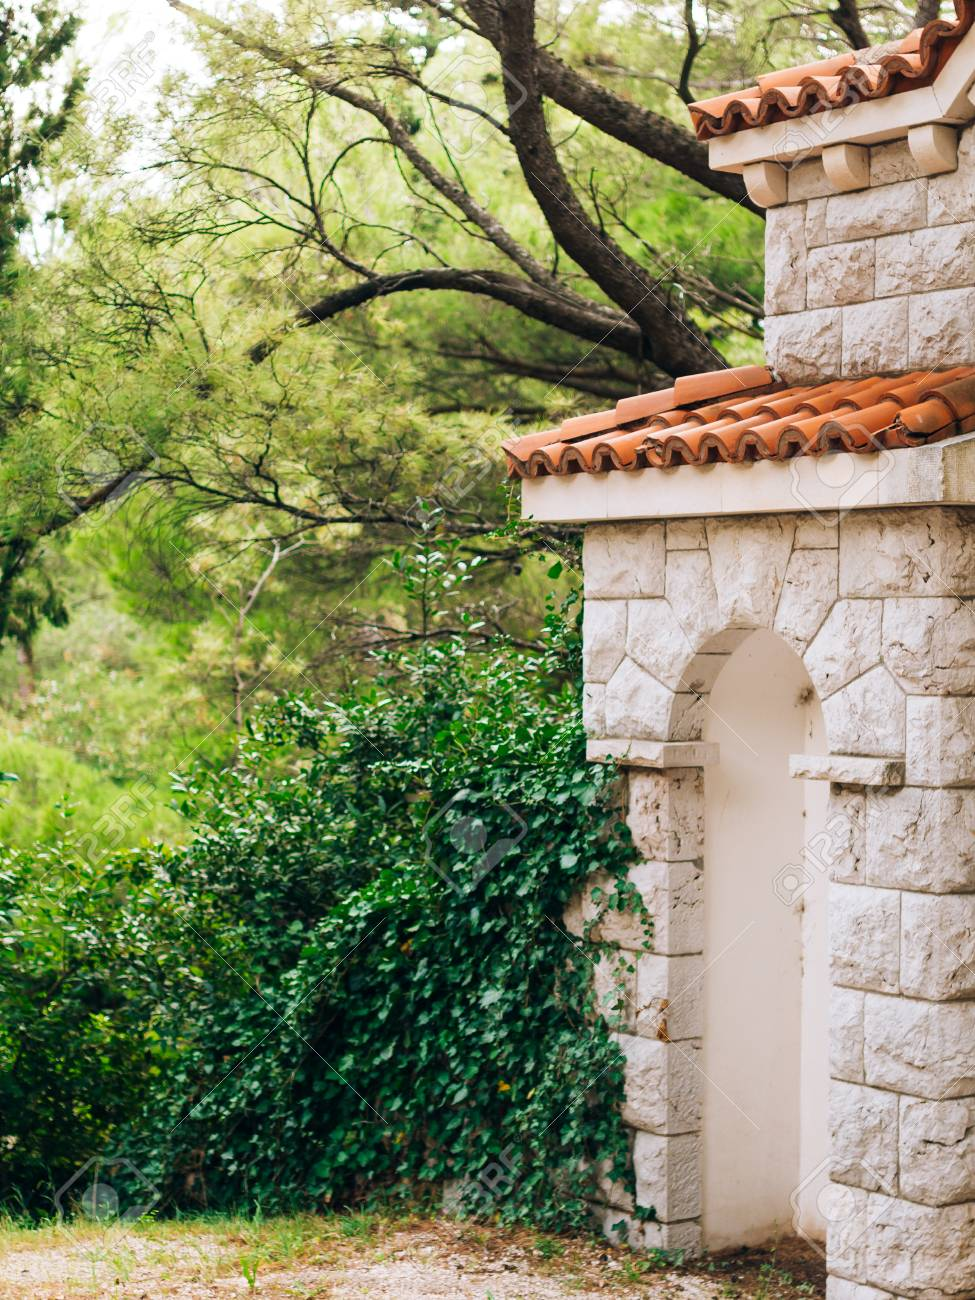 Stone Gate With A Tiled Roof In The Forest Handmade Exterior Stock Photo Picture And Royalty Free Image Image 86102487